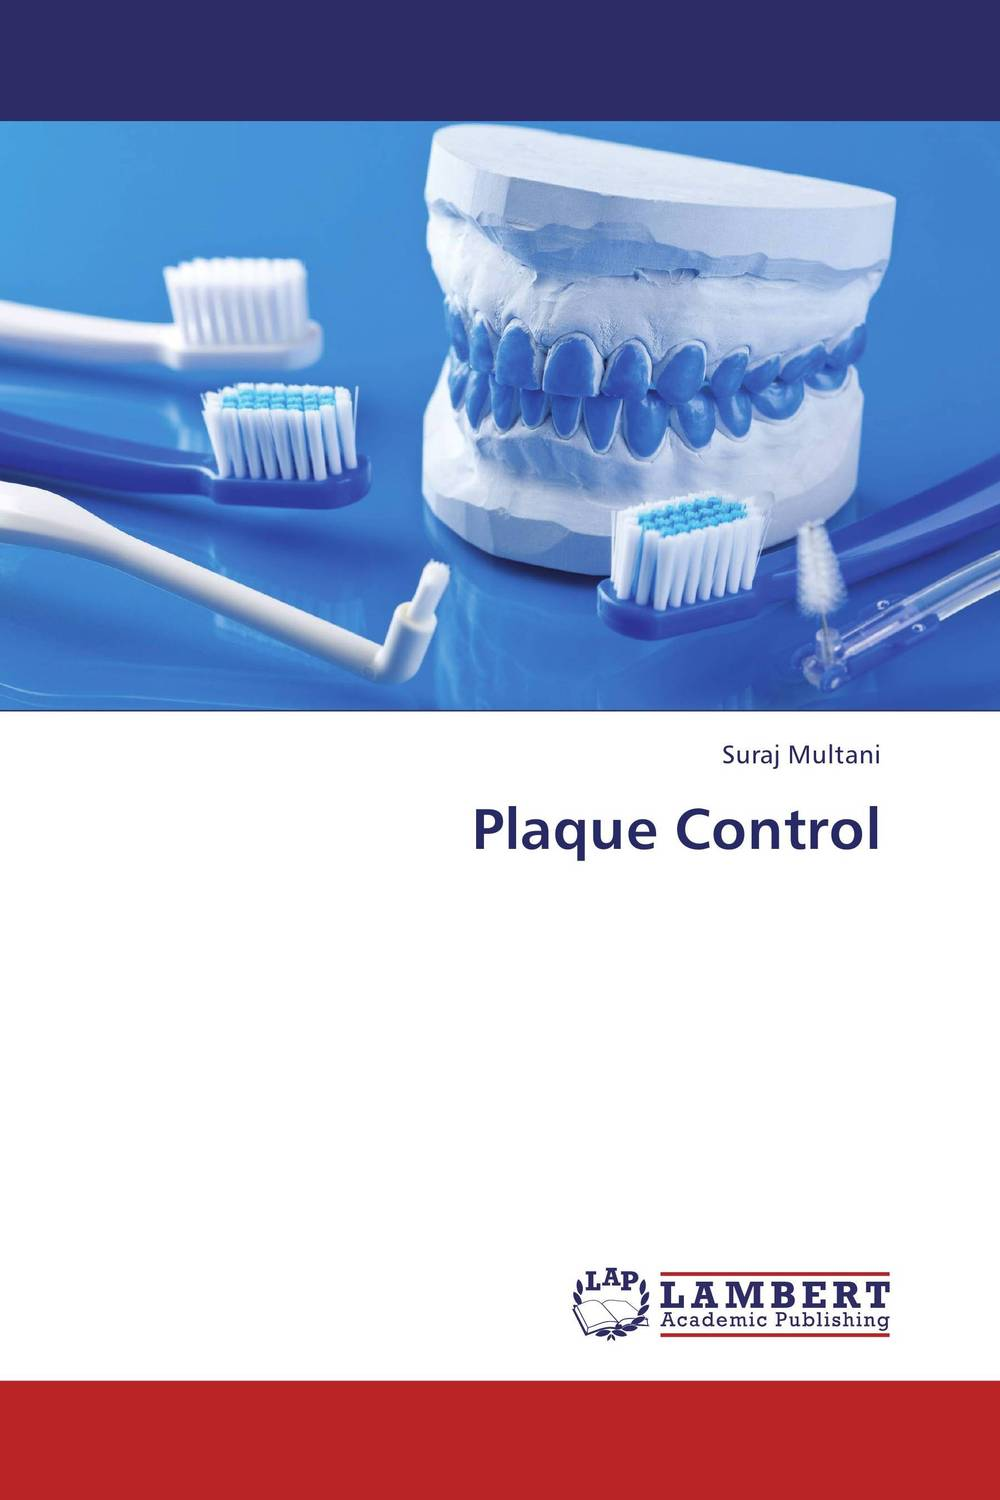 Plaque Control new arrival classification of periodontal diseases teeth model dental patient communication model process of periodontal disease